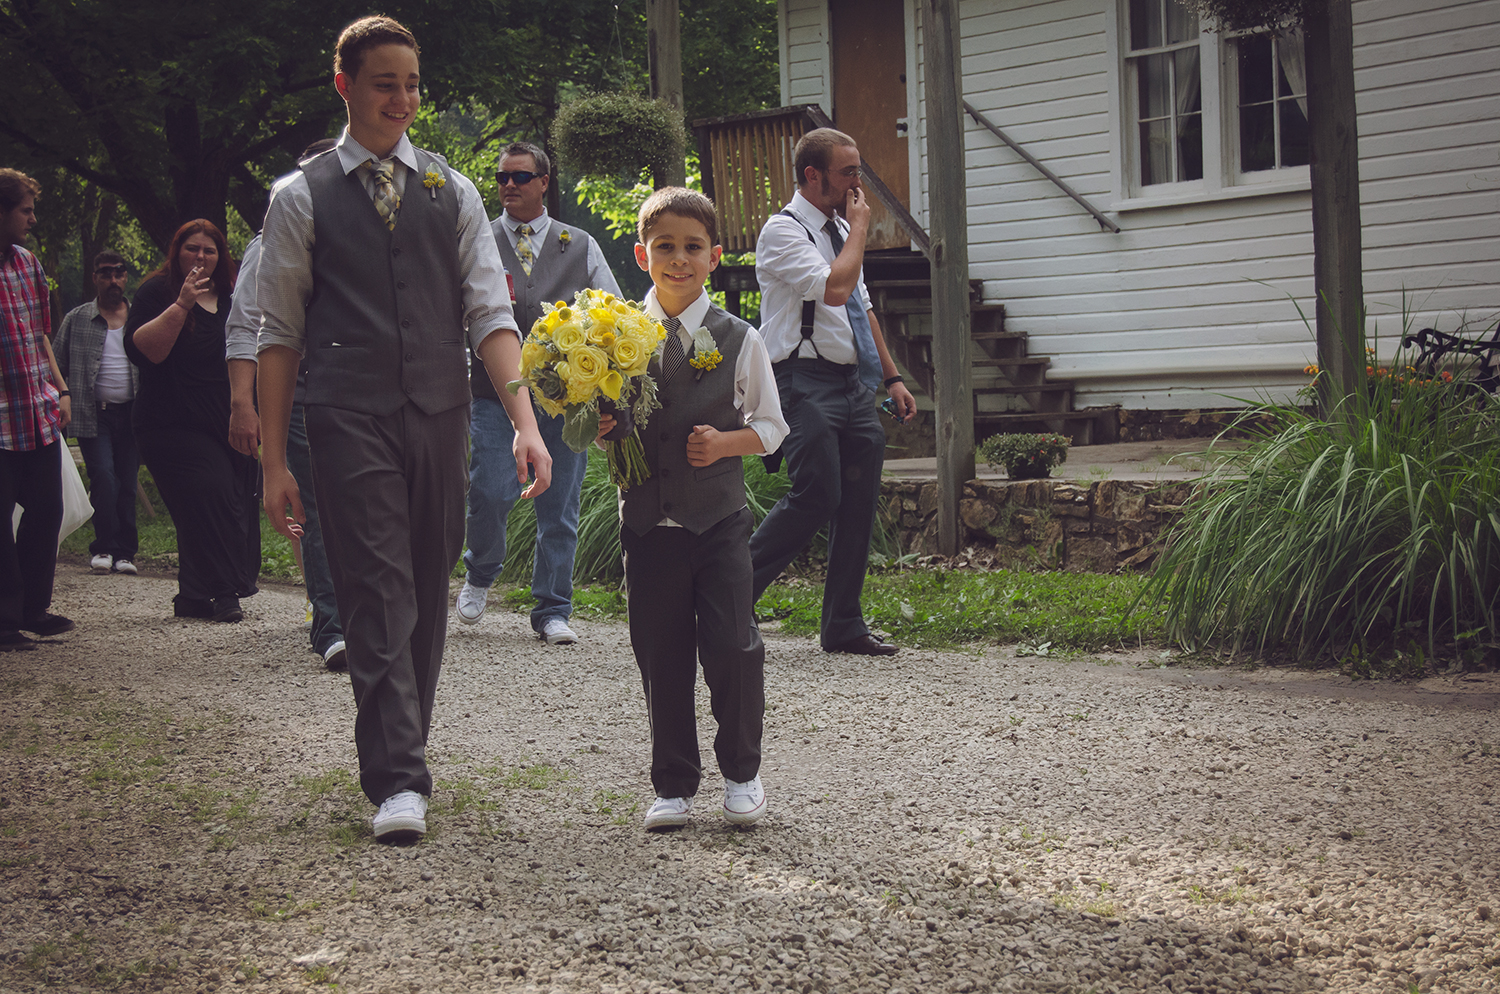 Both of their children were the absolute center of Julia and Davids happiness and boy did they look sharp!